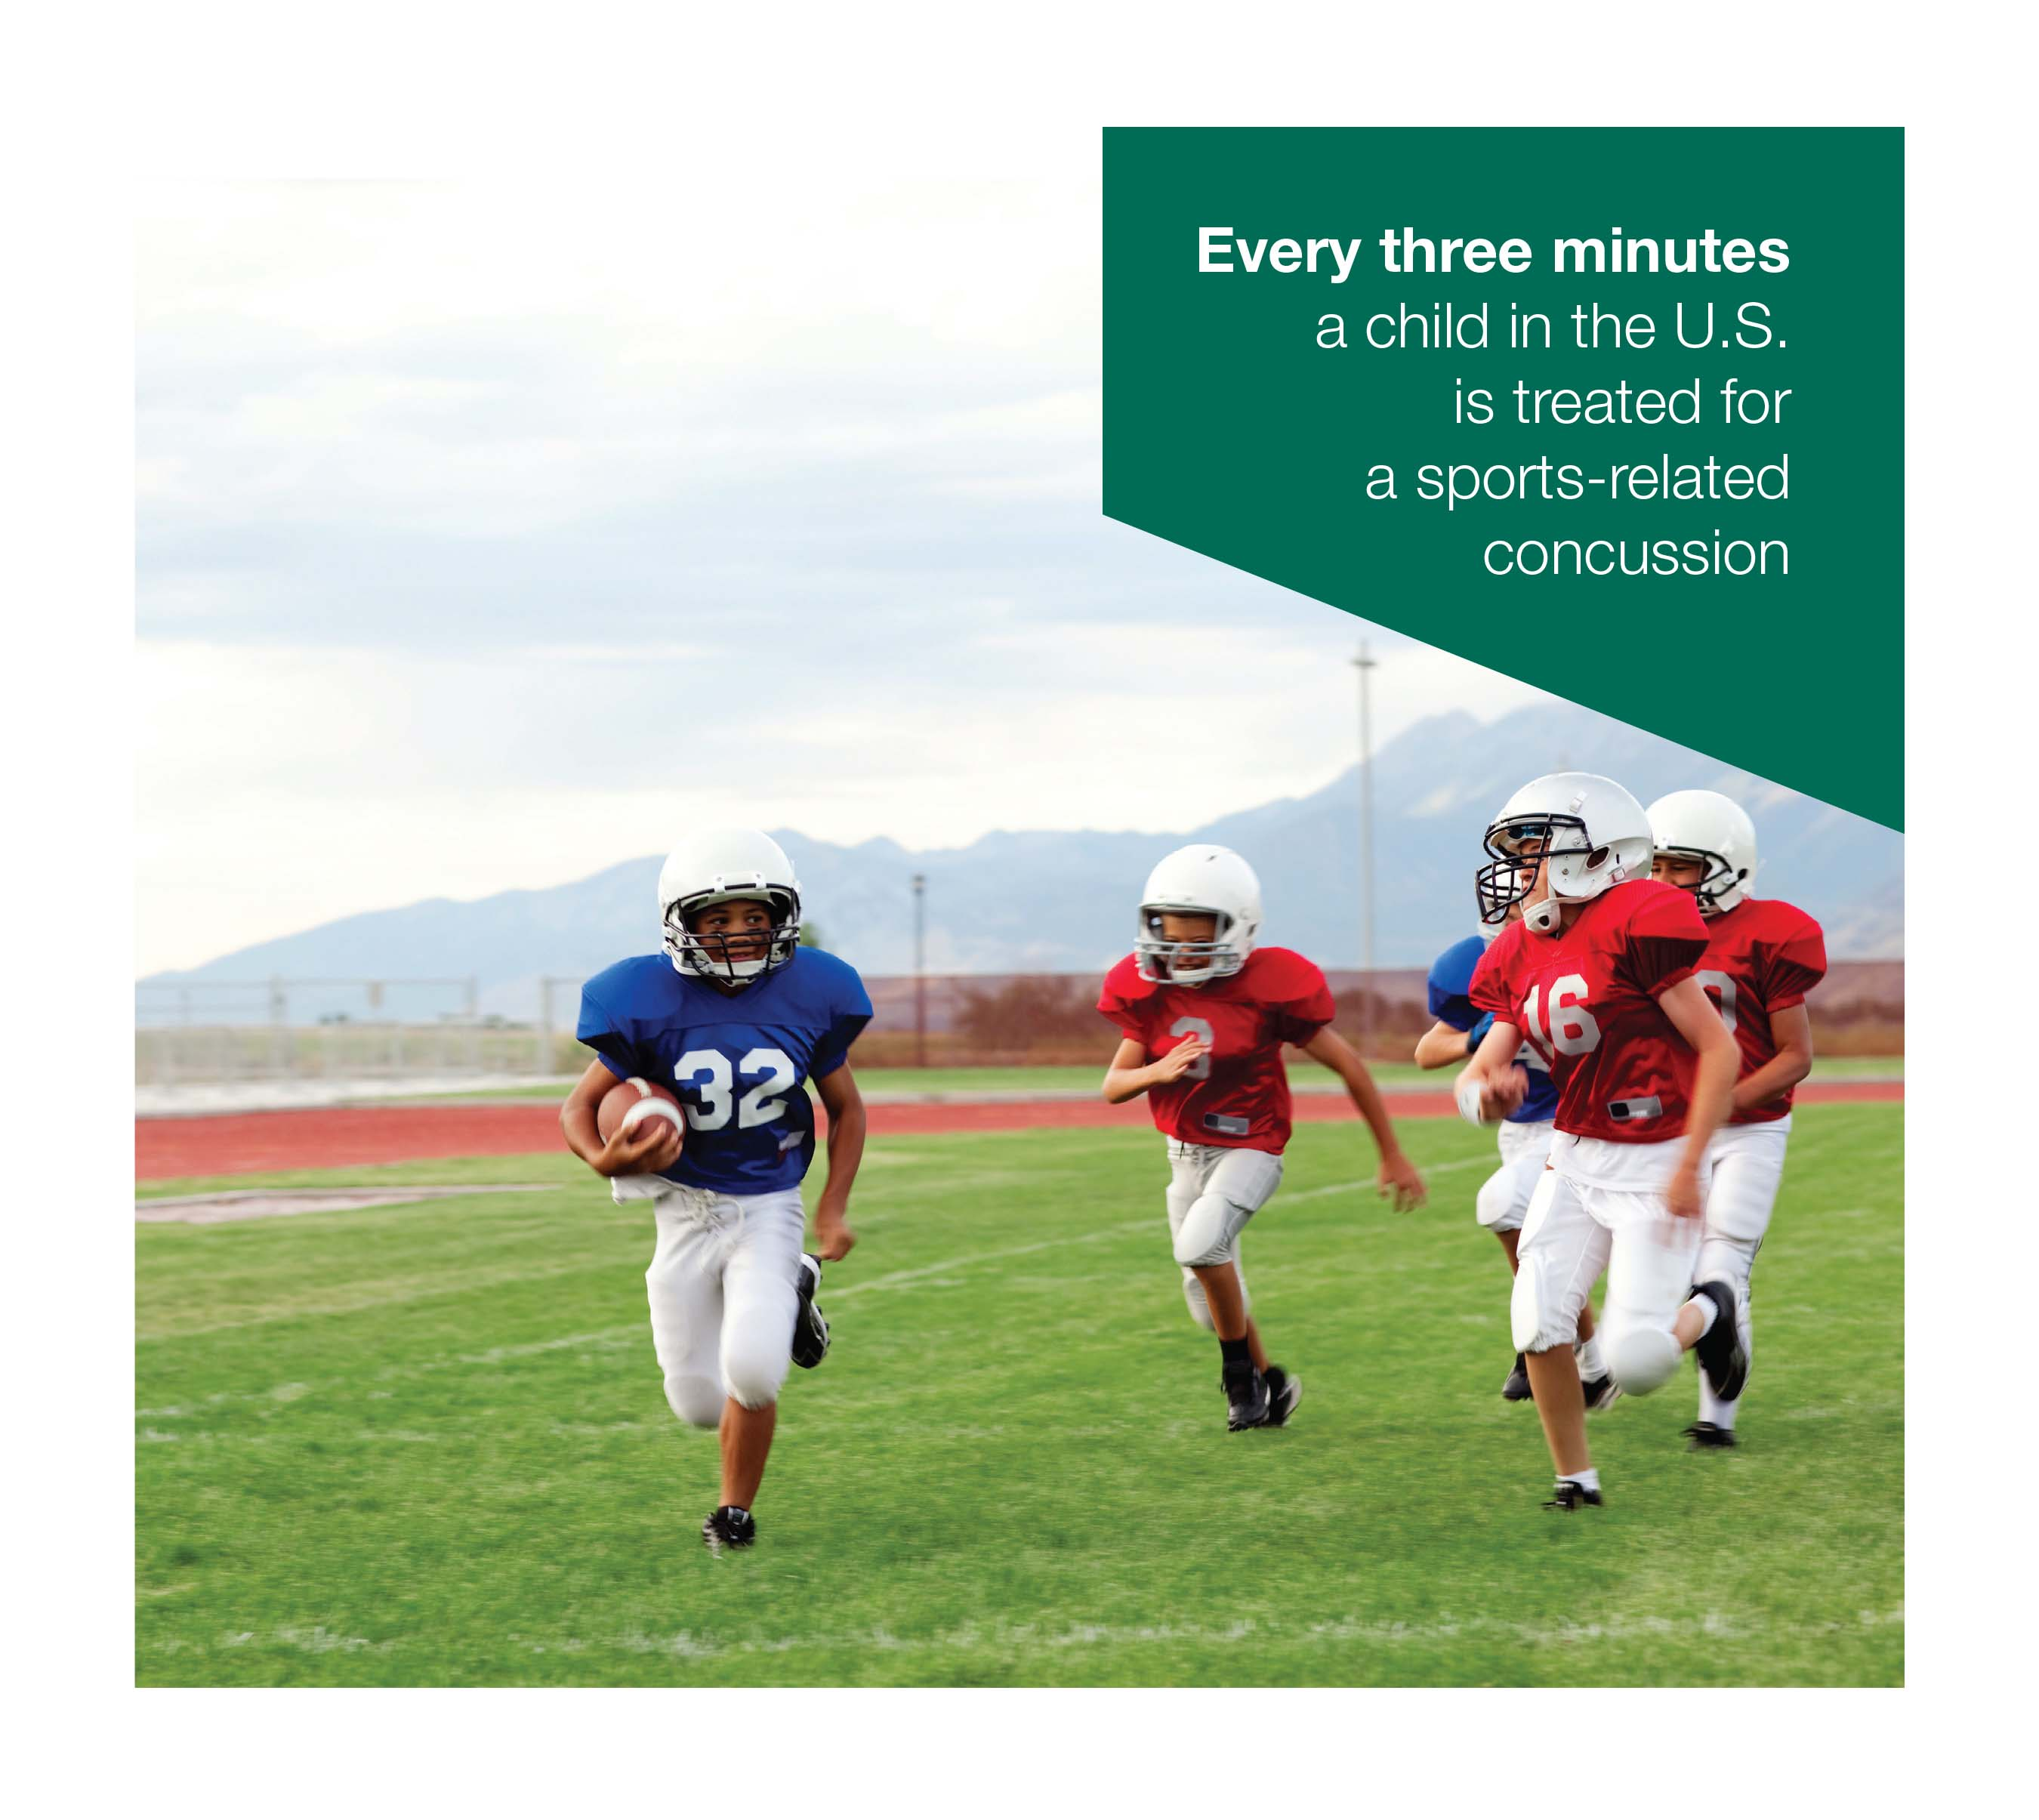 Every three minutes a child in the U.S. is treated for a sports-related concussion